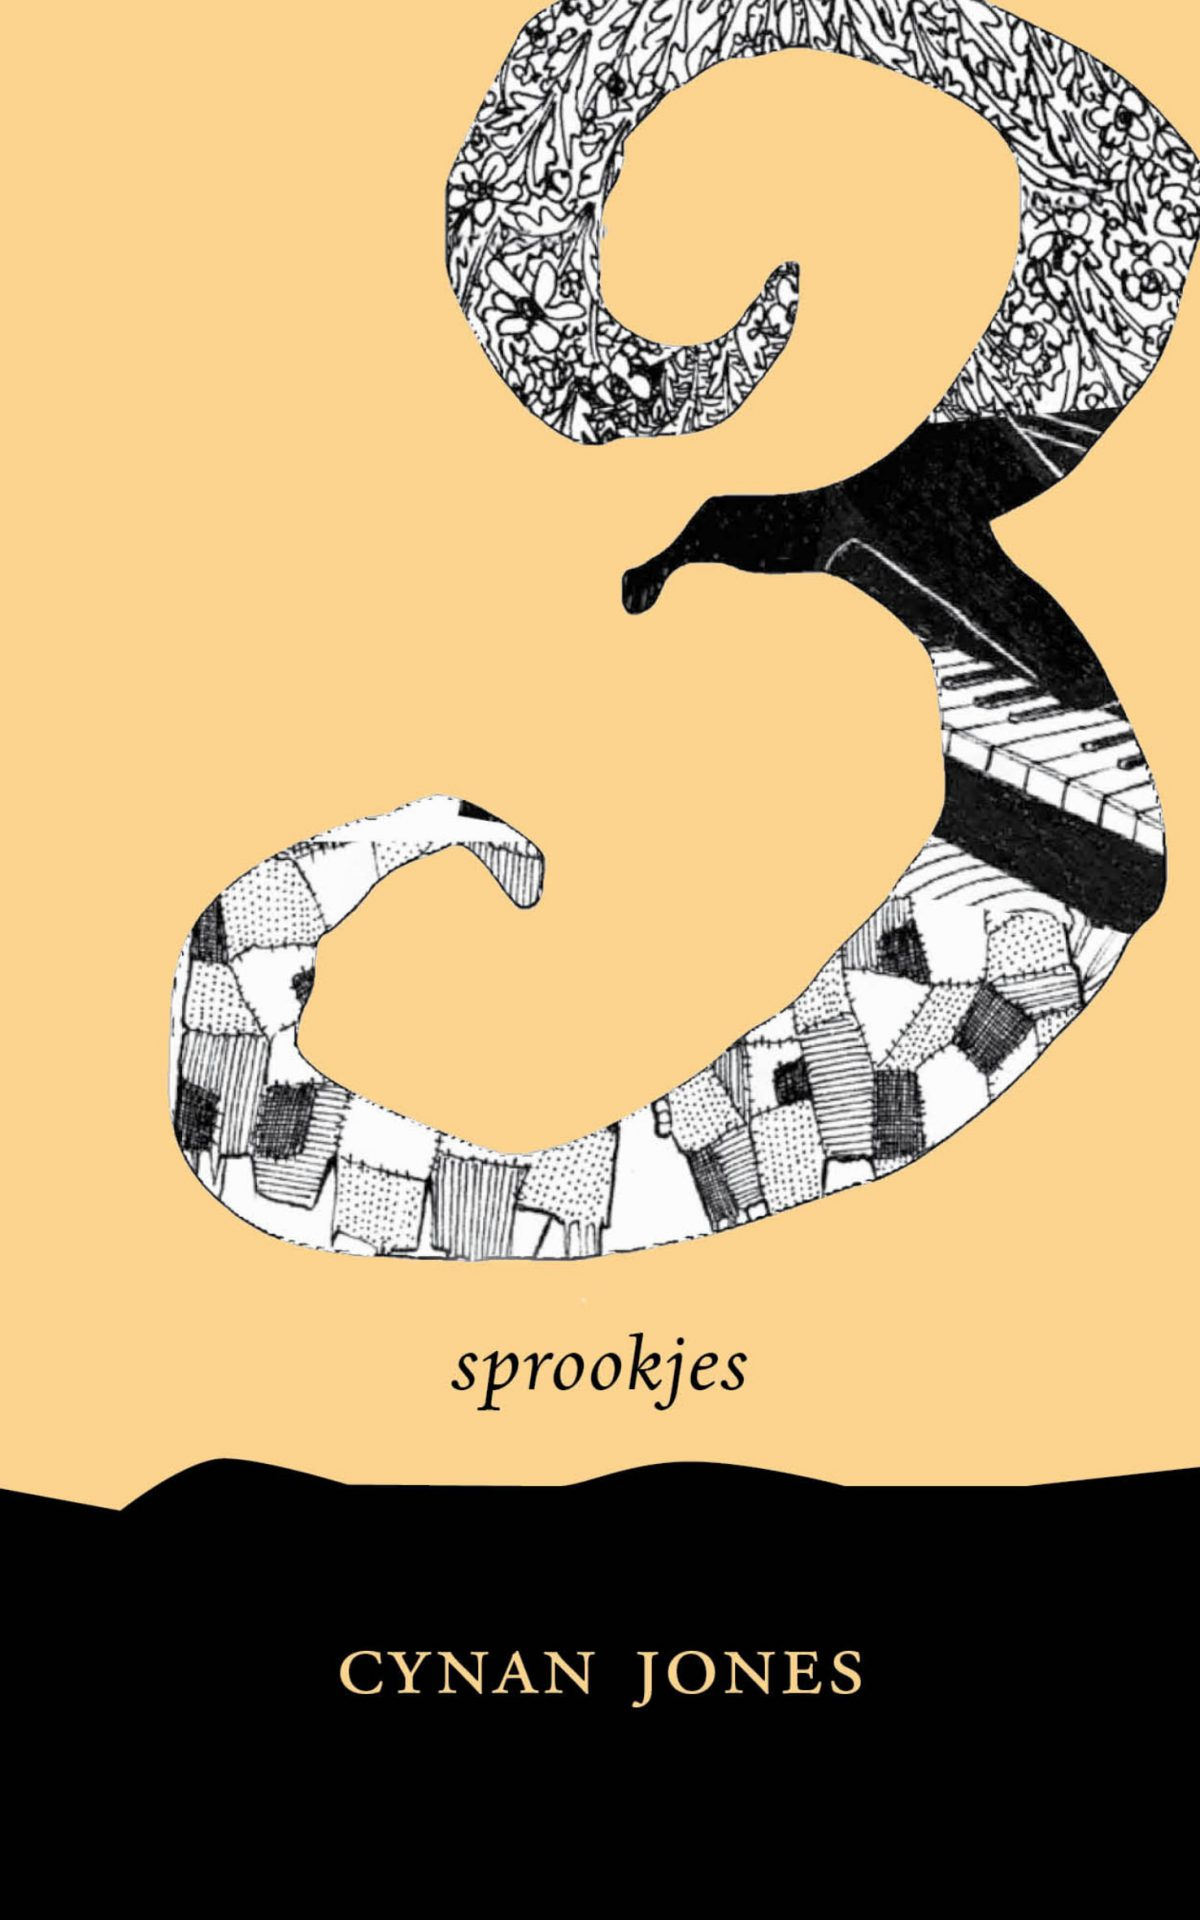 3 sprookjes – Cynan Jones